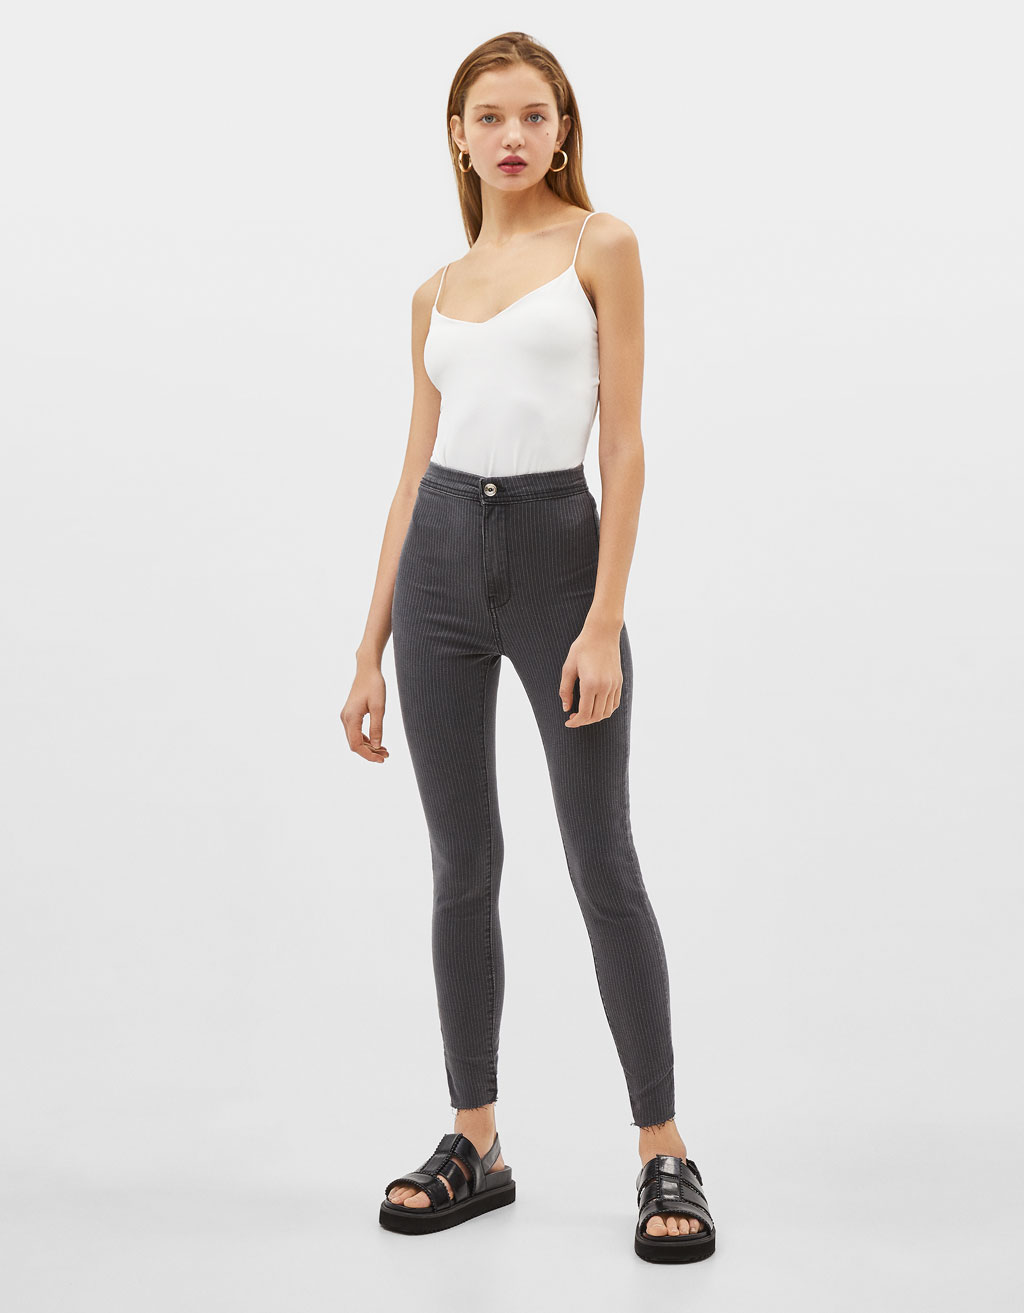 High-rise jeggings